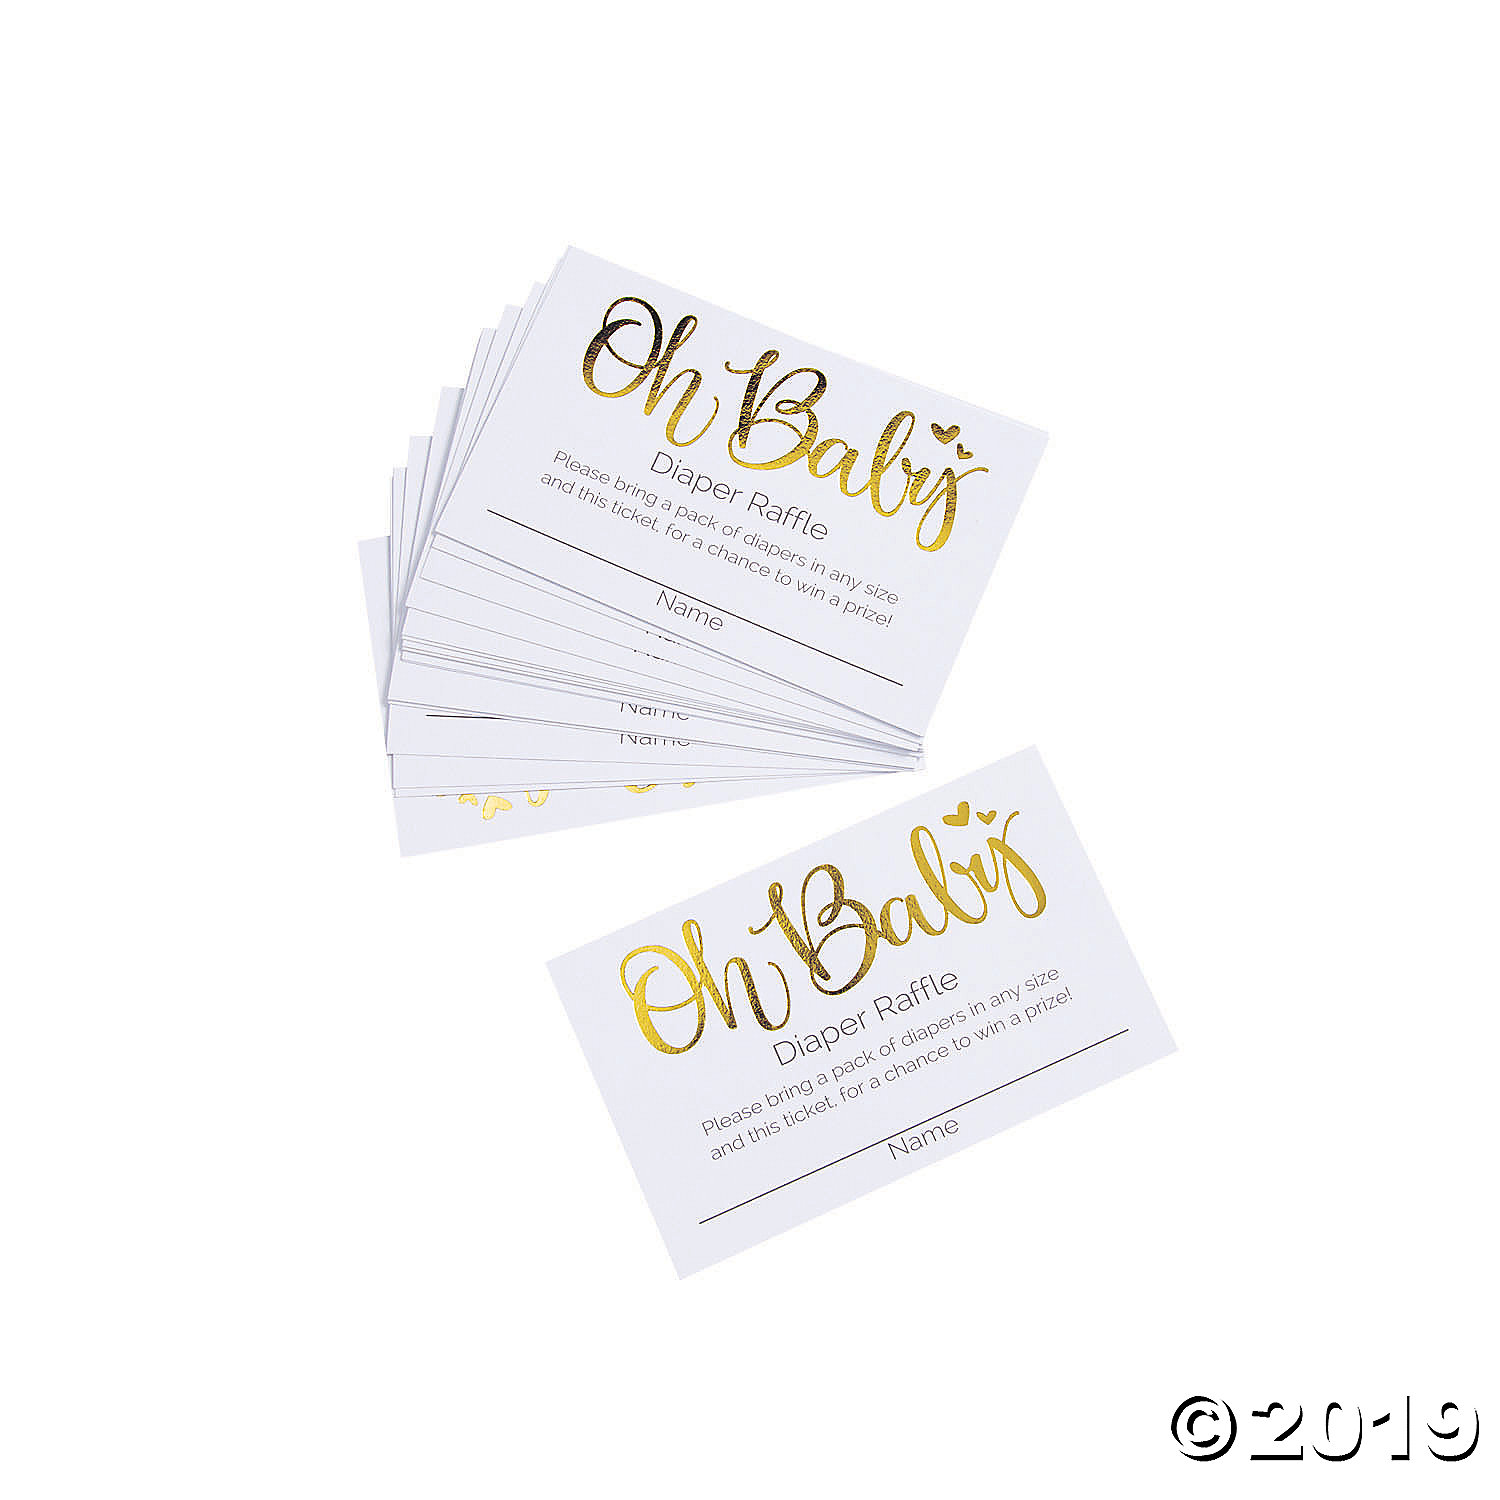 ** BABY SHOWER 48 PRIZE TICKETS 16 SHEETS GAME GENDER REVEAL PARTY RAFFLE